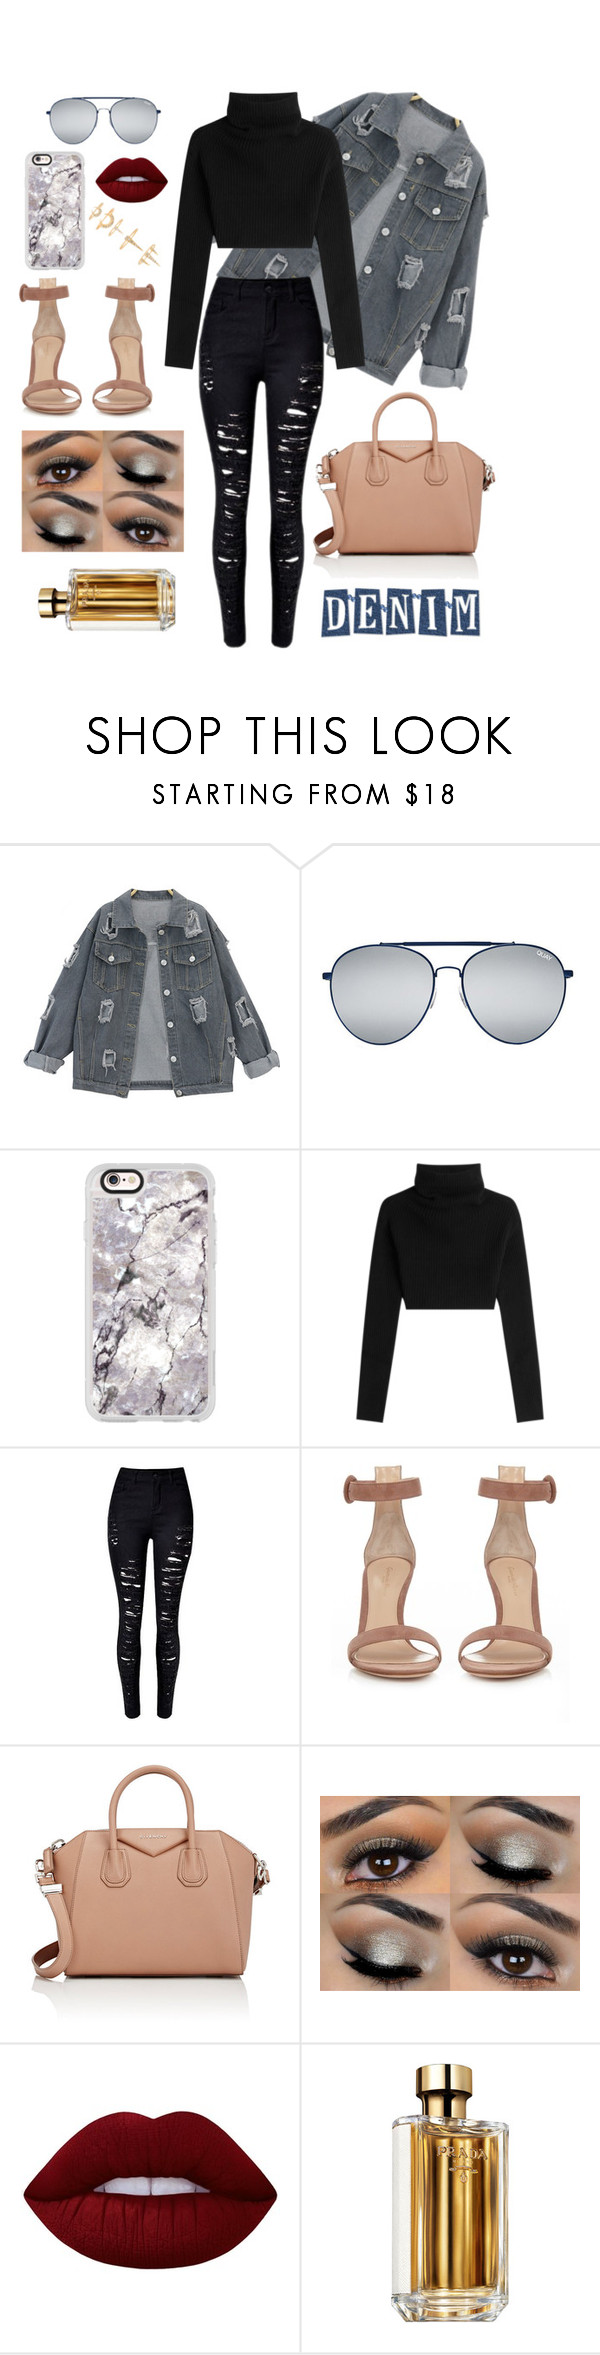 """""""Untitled #200"""" by hallloweenqueen ❤ liked on Polyvore featuring Quay, Casetify, Valentino, Gianvito Rossi, Givenchy, Lime Crime, Prada, Luv Aj, denim and denimjackets"""